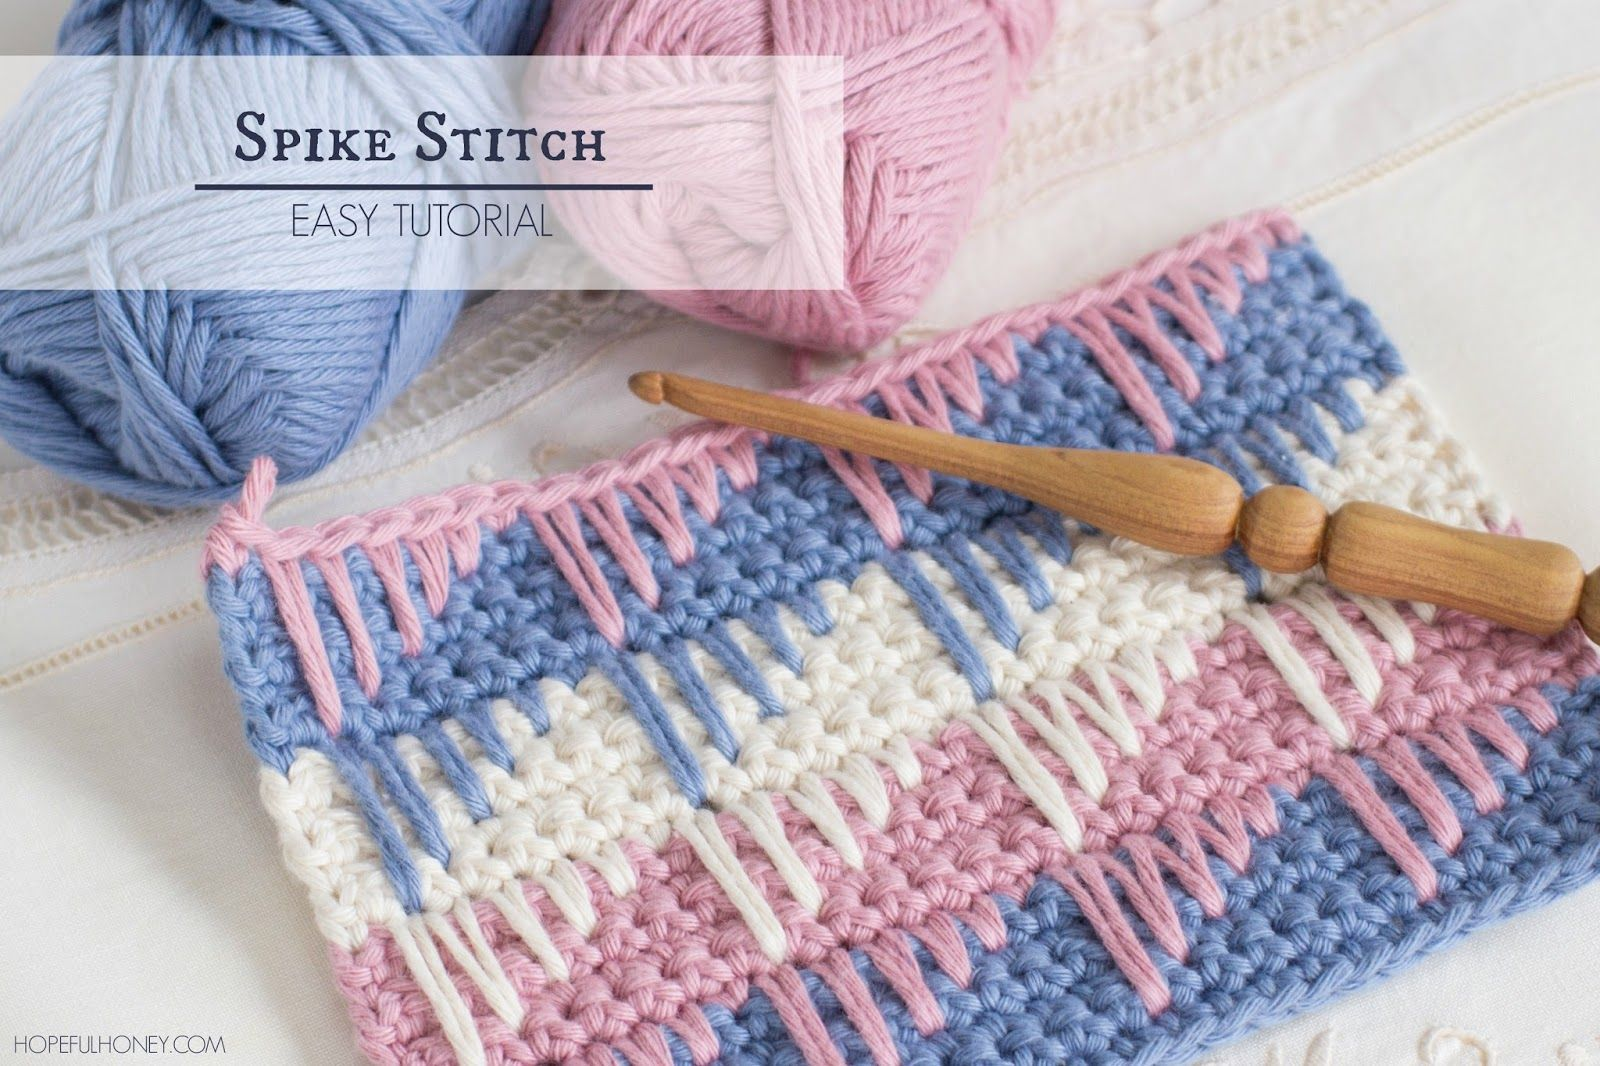 How To: Crochet The Spike Stitch - Easy Tutorial | Pinterest ...